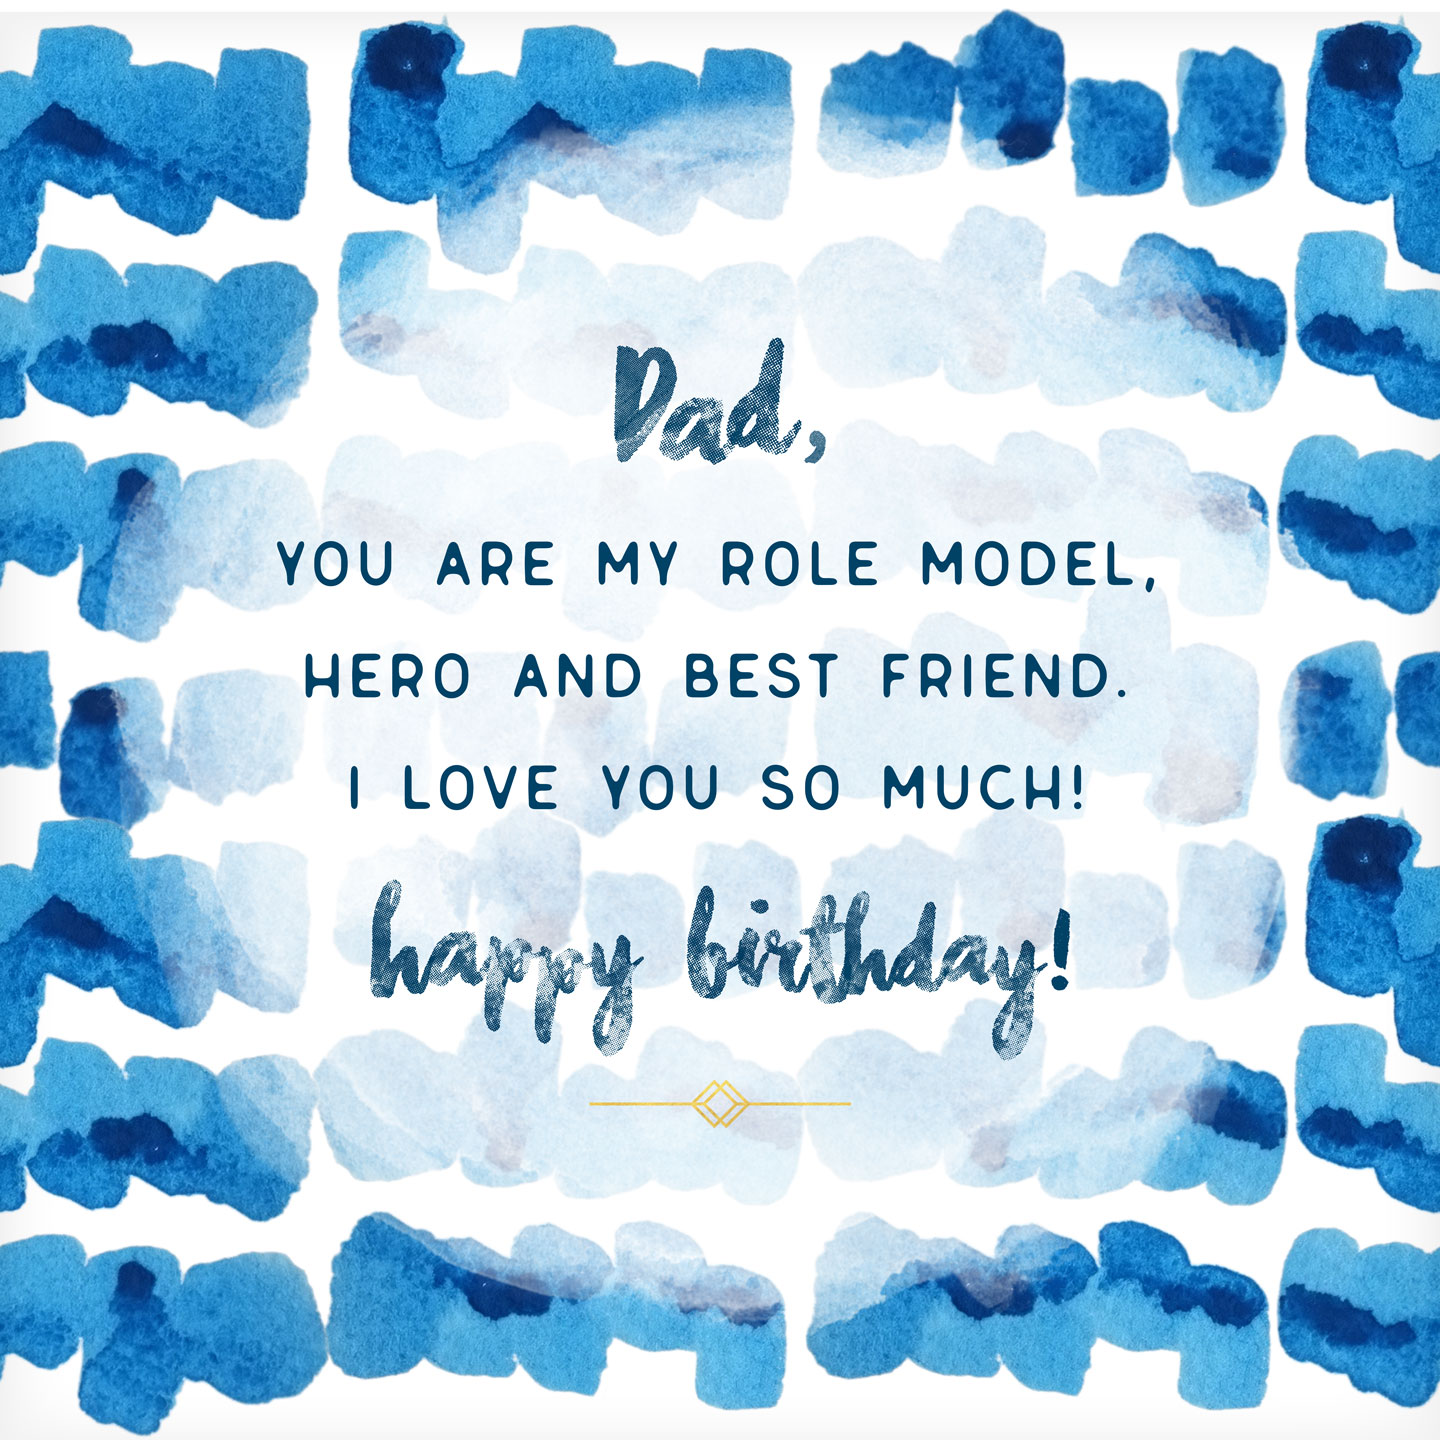 thoughtful birthday card messages ; birthday-card-messages-dad